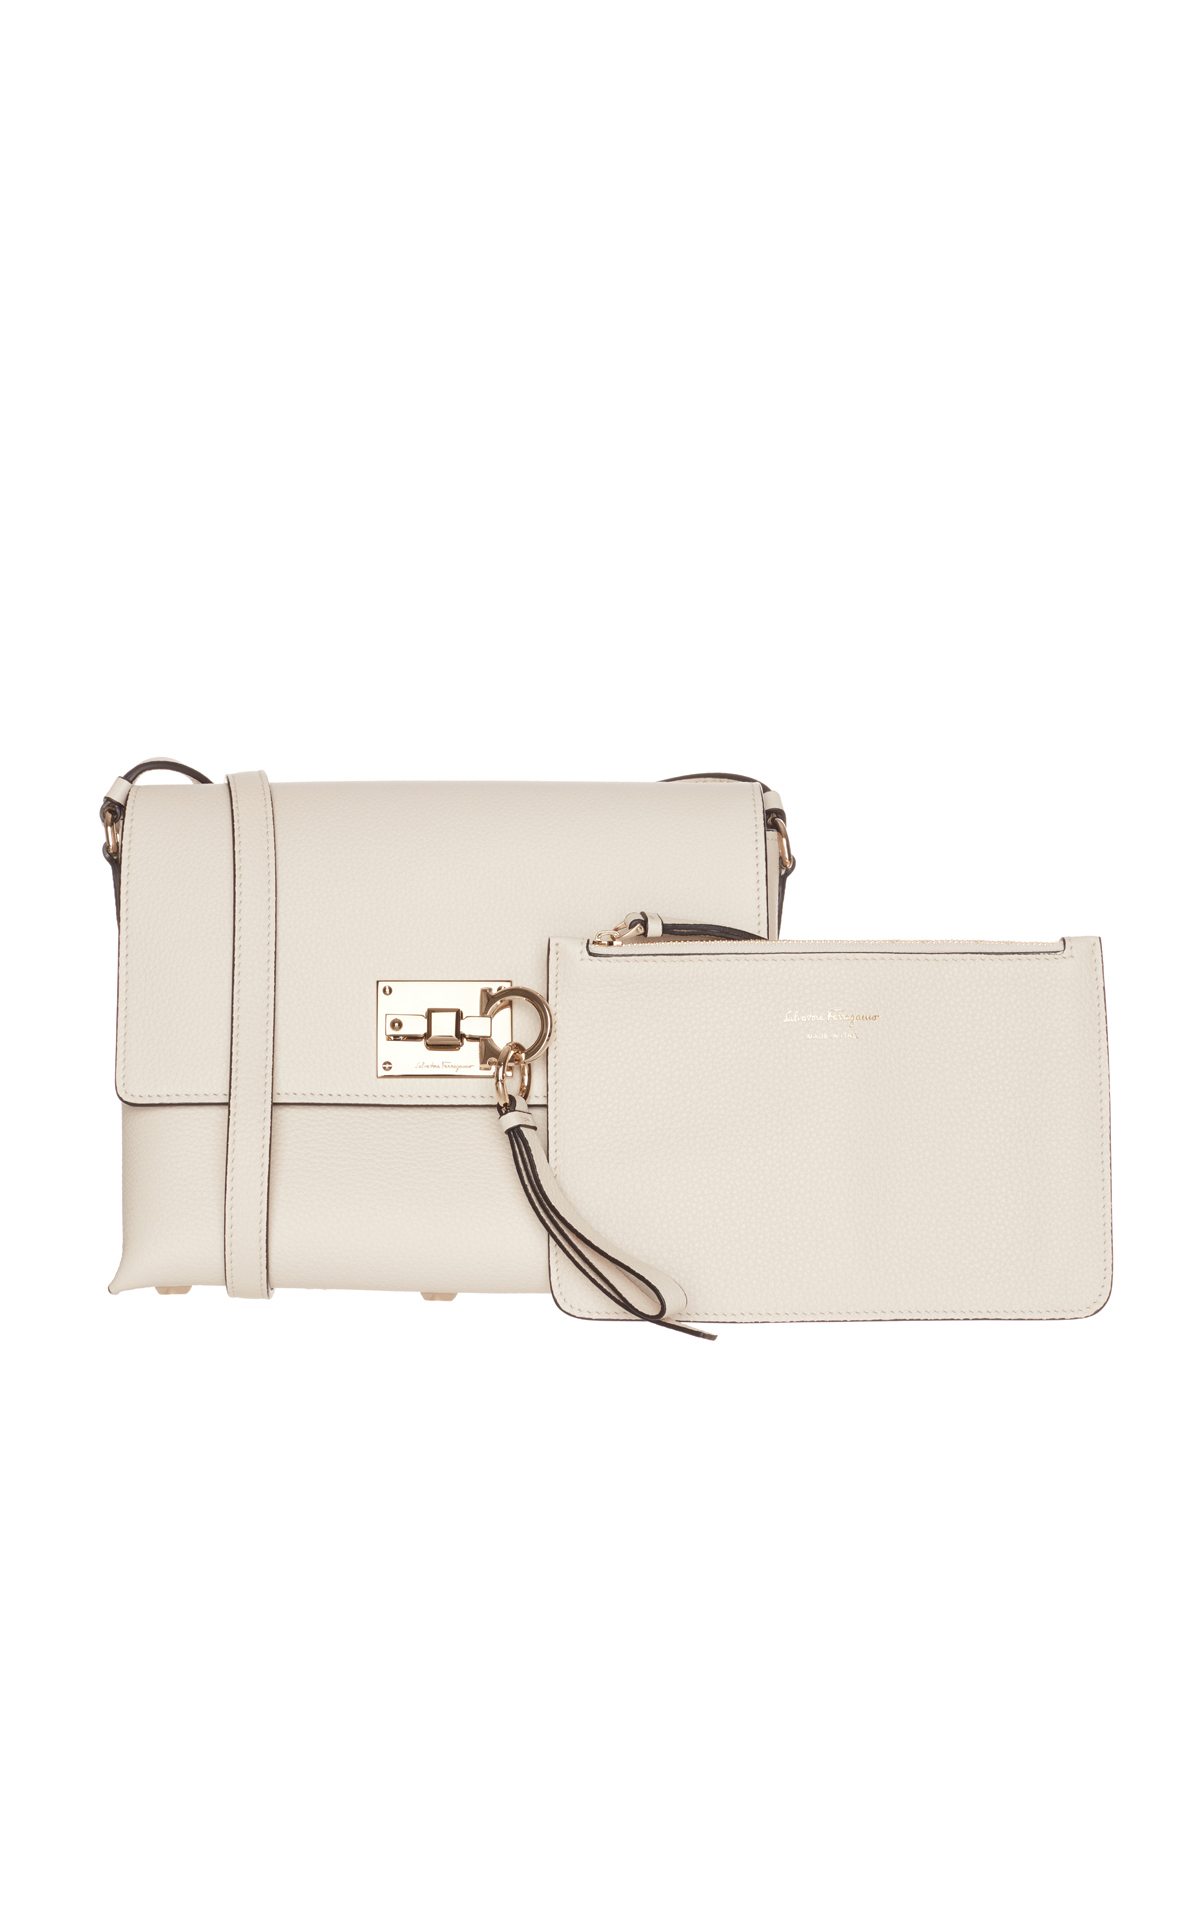 Salvatore Ferragamo White cross body from Bicester Village